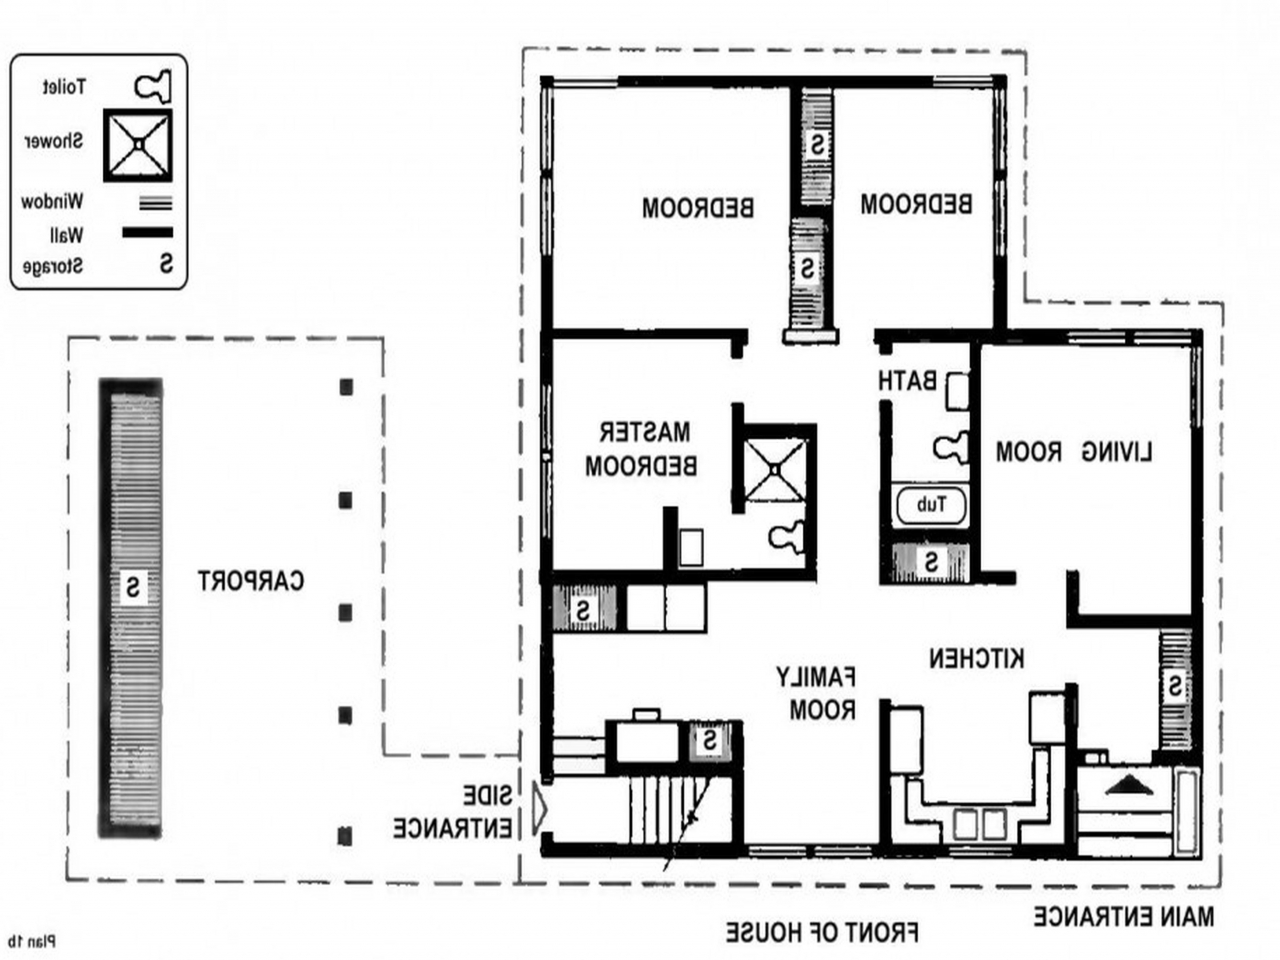 Design your own shoes design your own floor plan bedroom plan of home design for Designing your own house plans